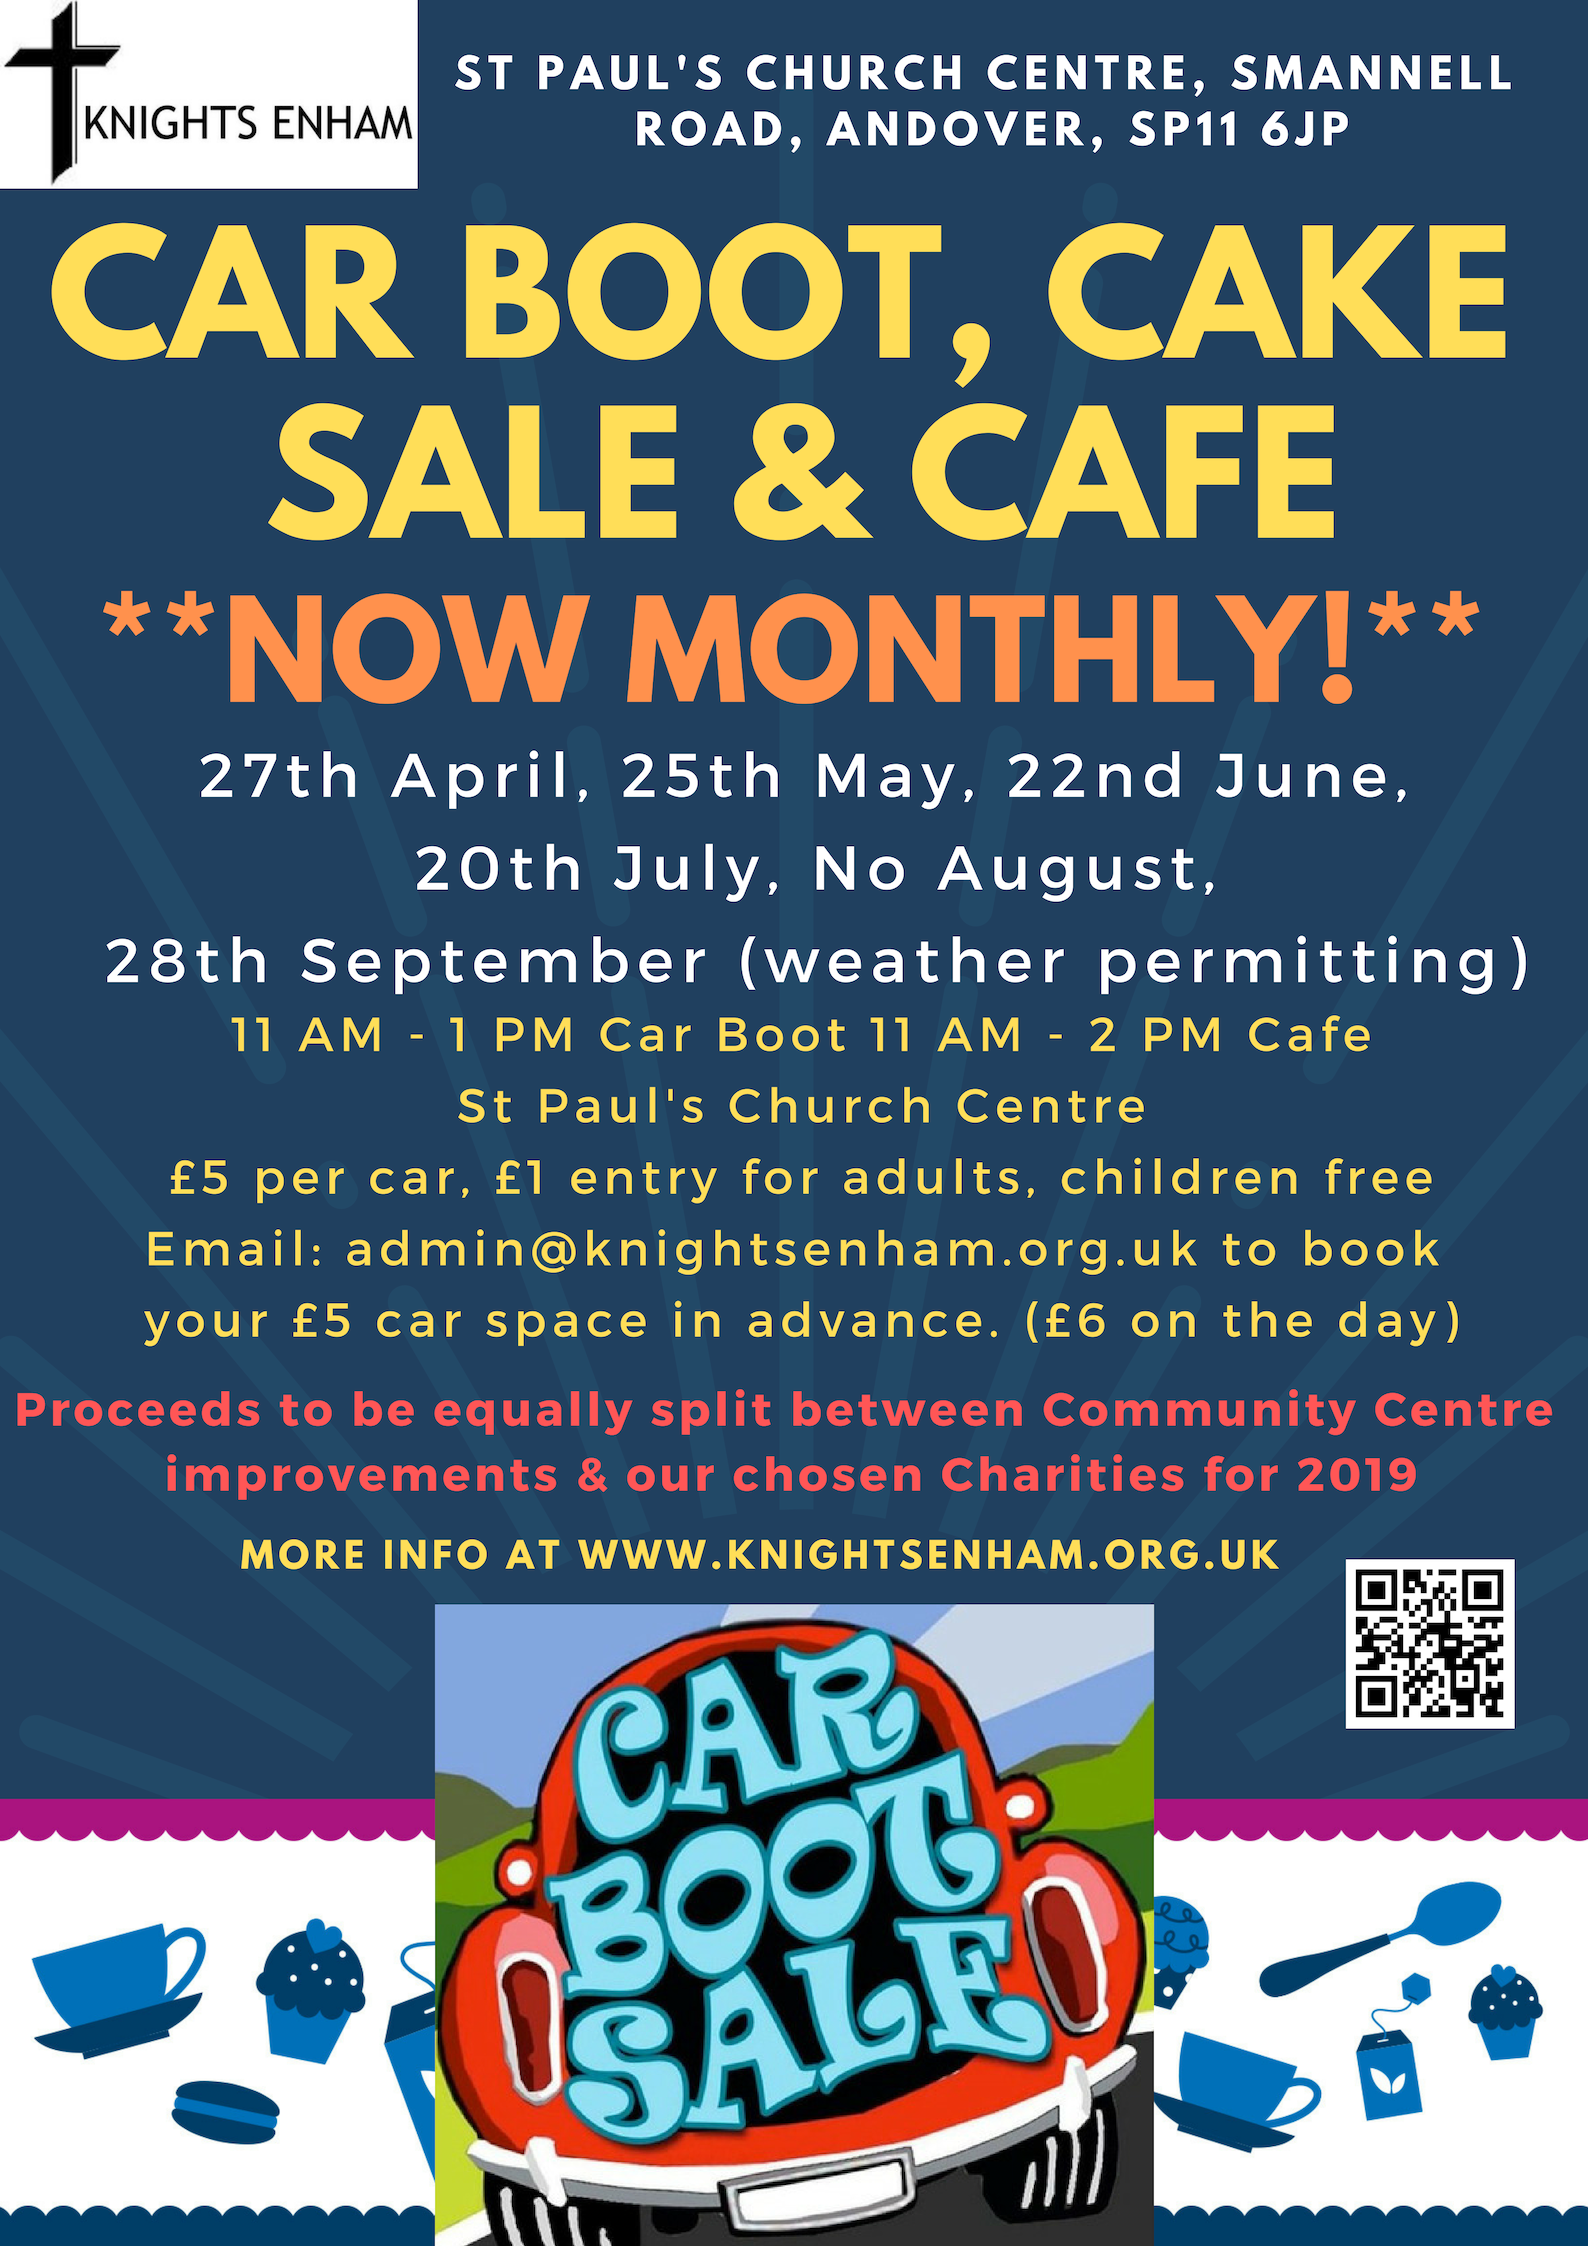 Car Boot & Cake Sale